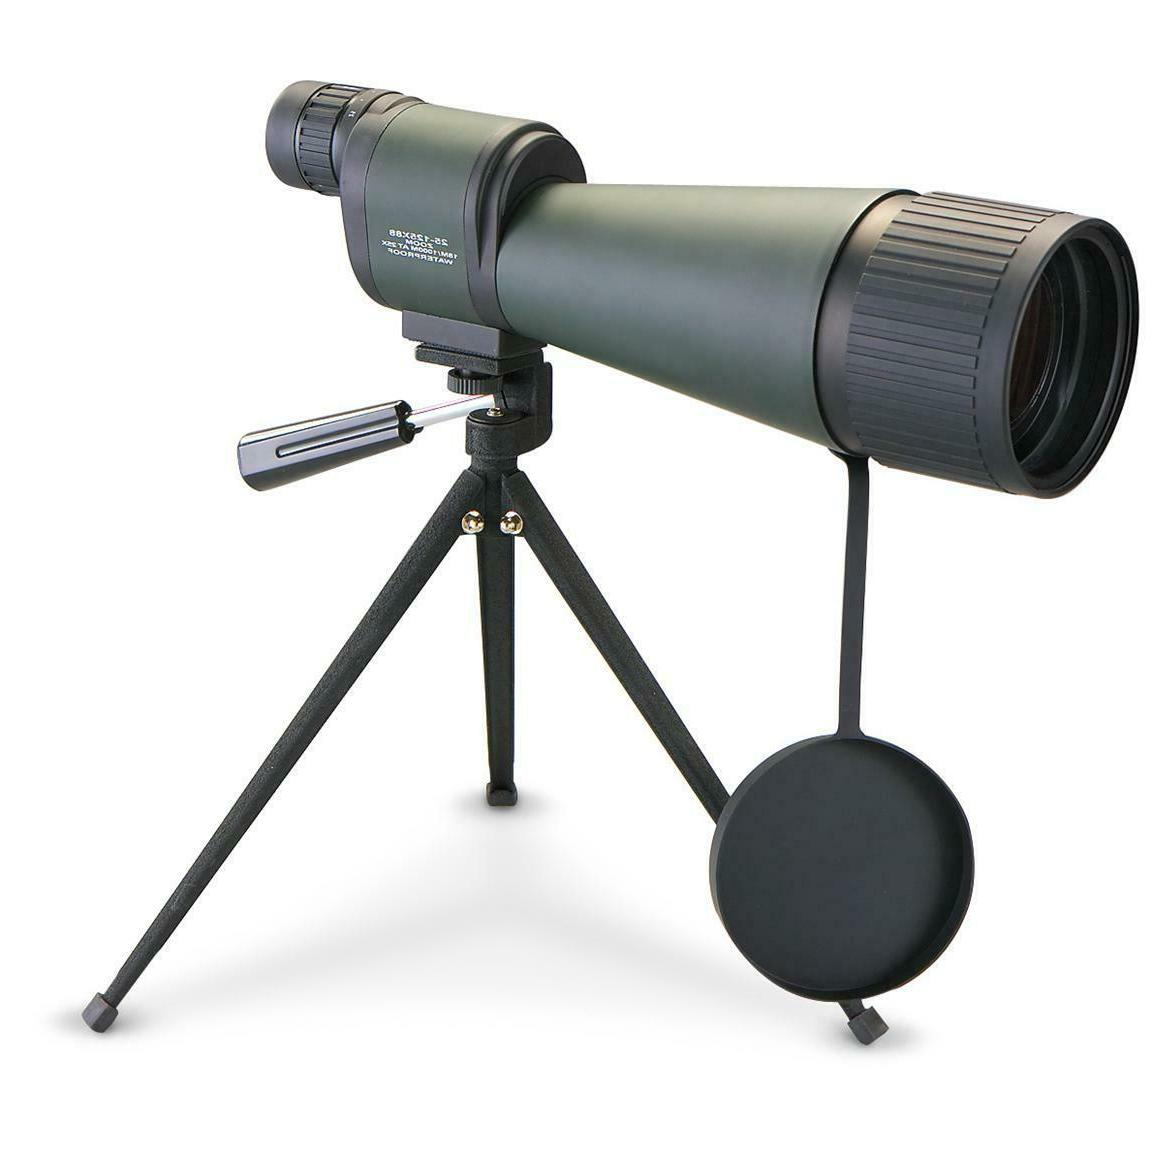 Barska 25-125x88 Benchmark Waterproof Spotting Scope